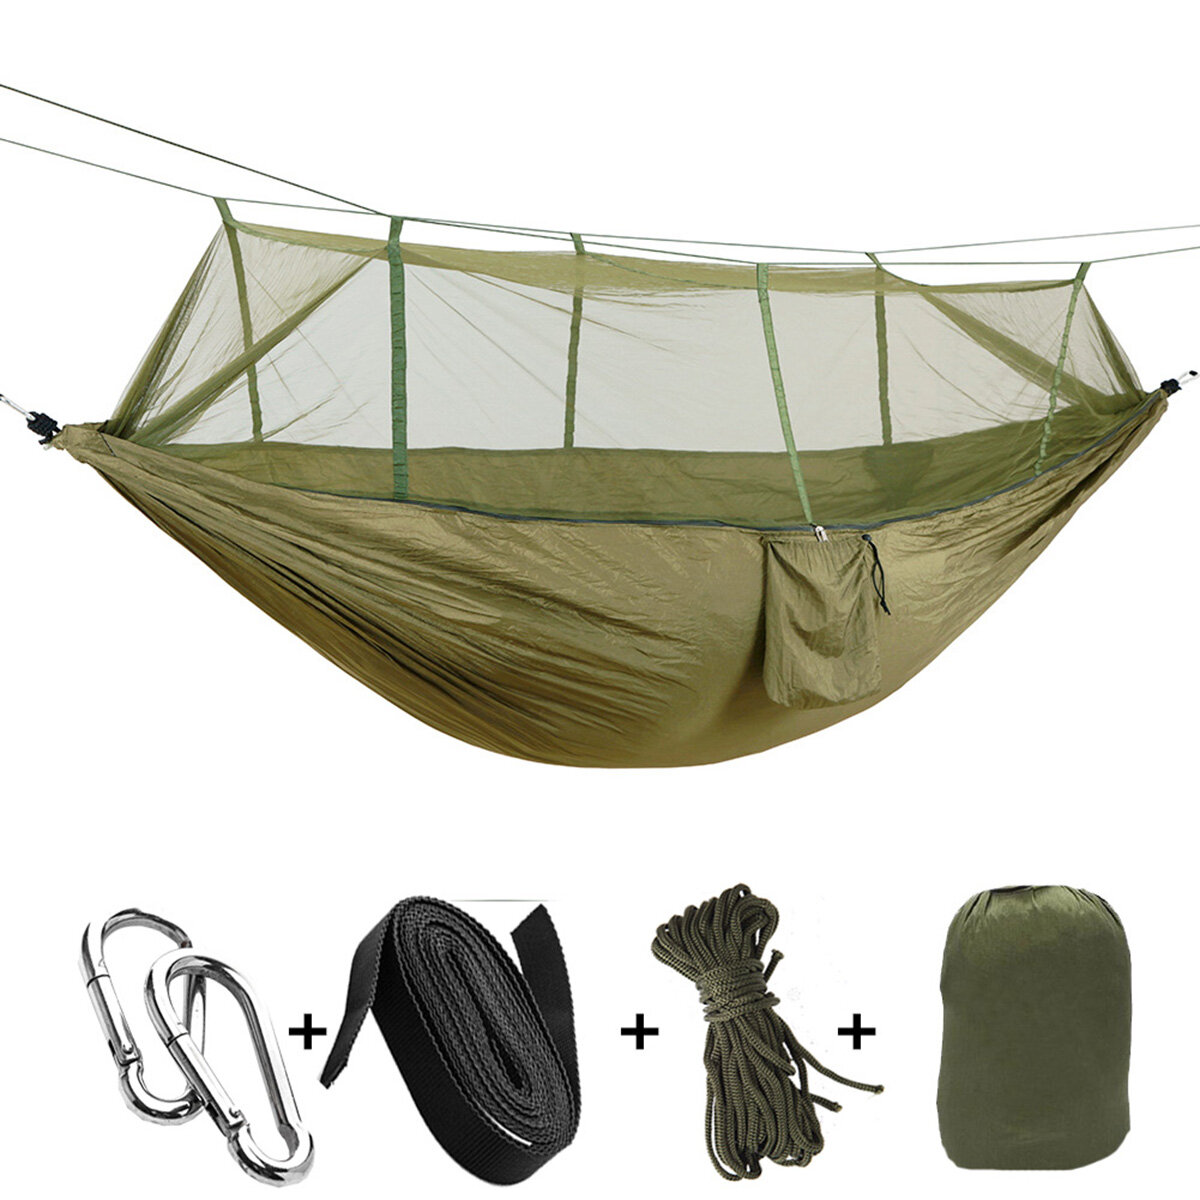 Portable Double Hammock With Mosquito Net Bed Outdoor Camping Sport Us Hammocks Sporting Goods